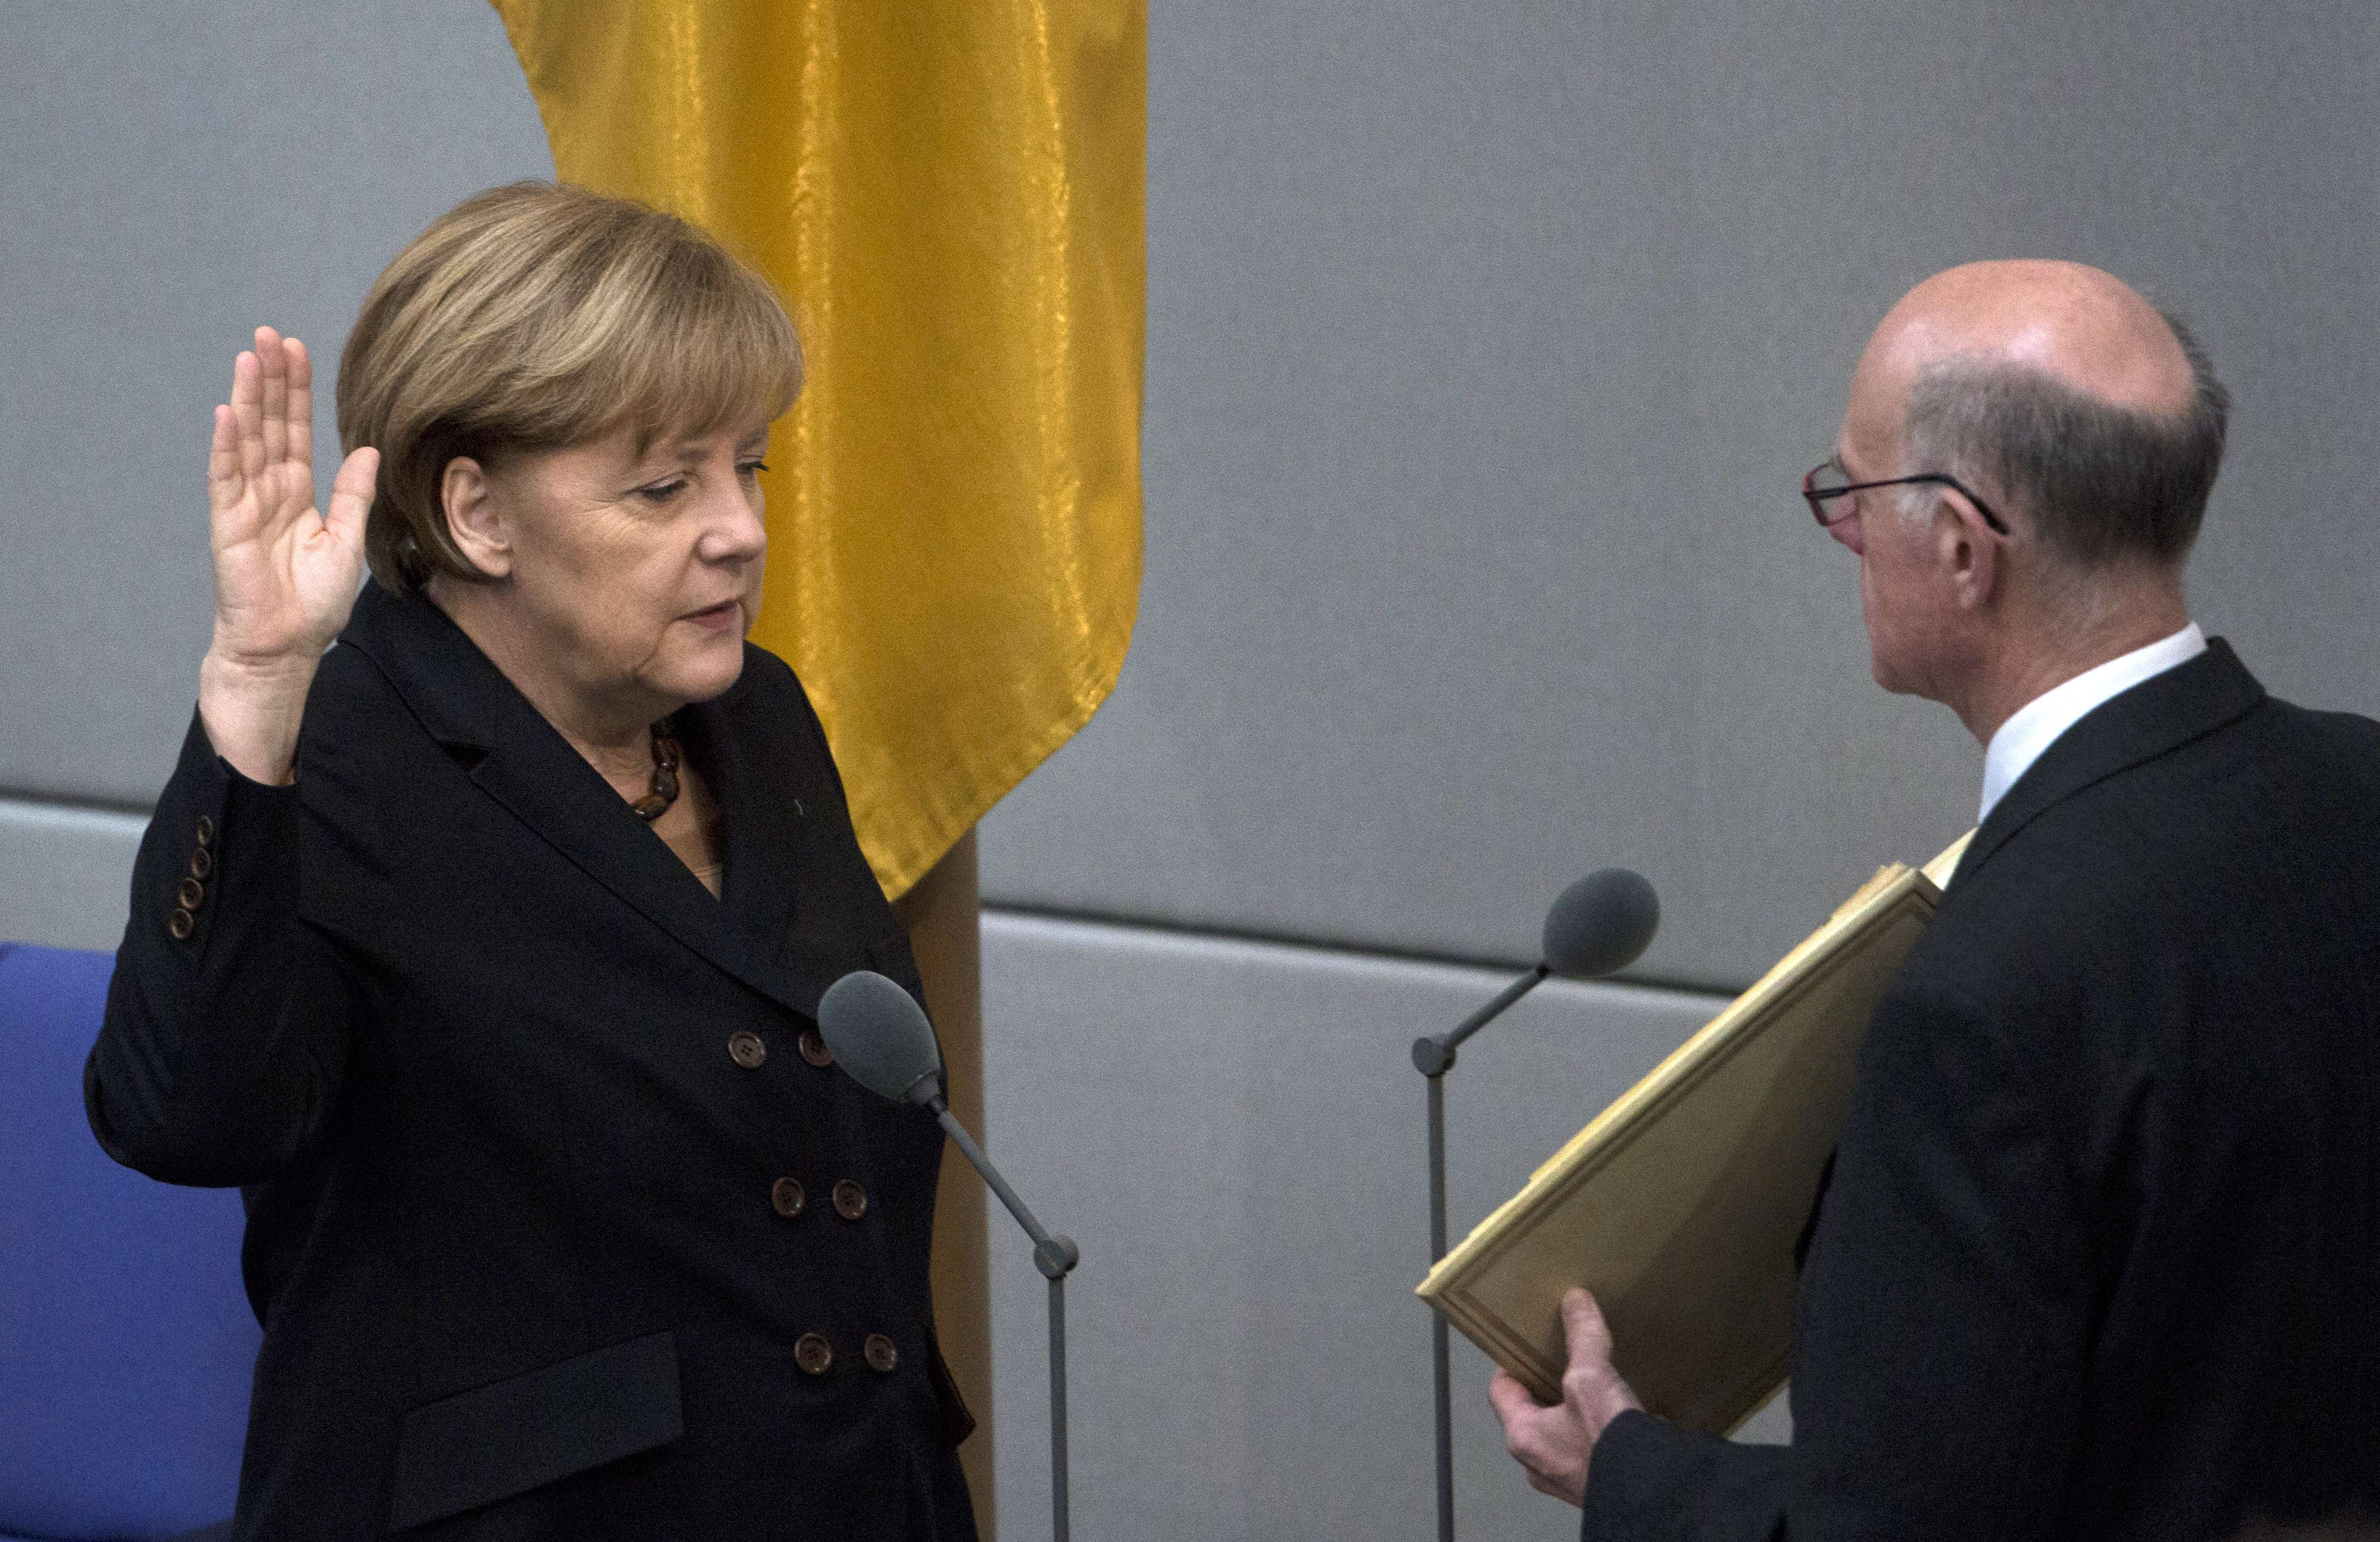 German Chancellor Angela Merkel is sworn in by the President of the Parliament Norbert Lammert (R) at the Bundestag (lower house of parliament) on December 17, 2013 in Berlin.  AFP PHOTO / JOHANNES EISELE